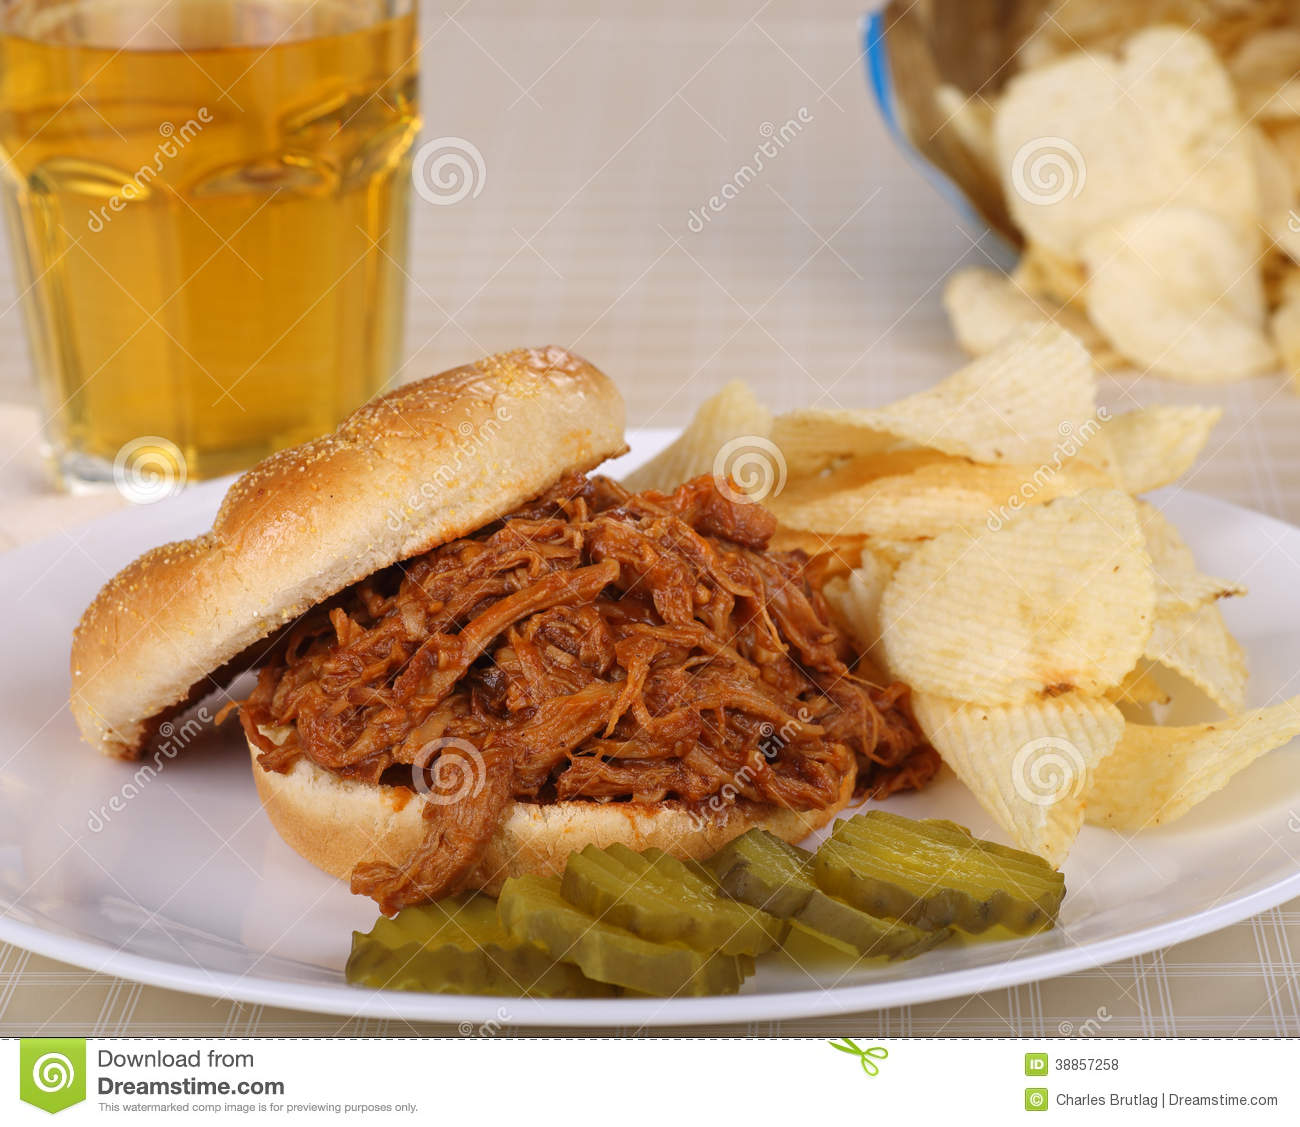 Pulled Pork Sandwich stock photo. Image of dinner, food.